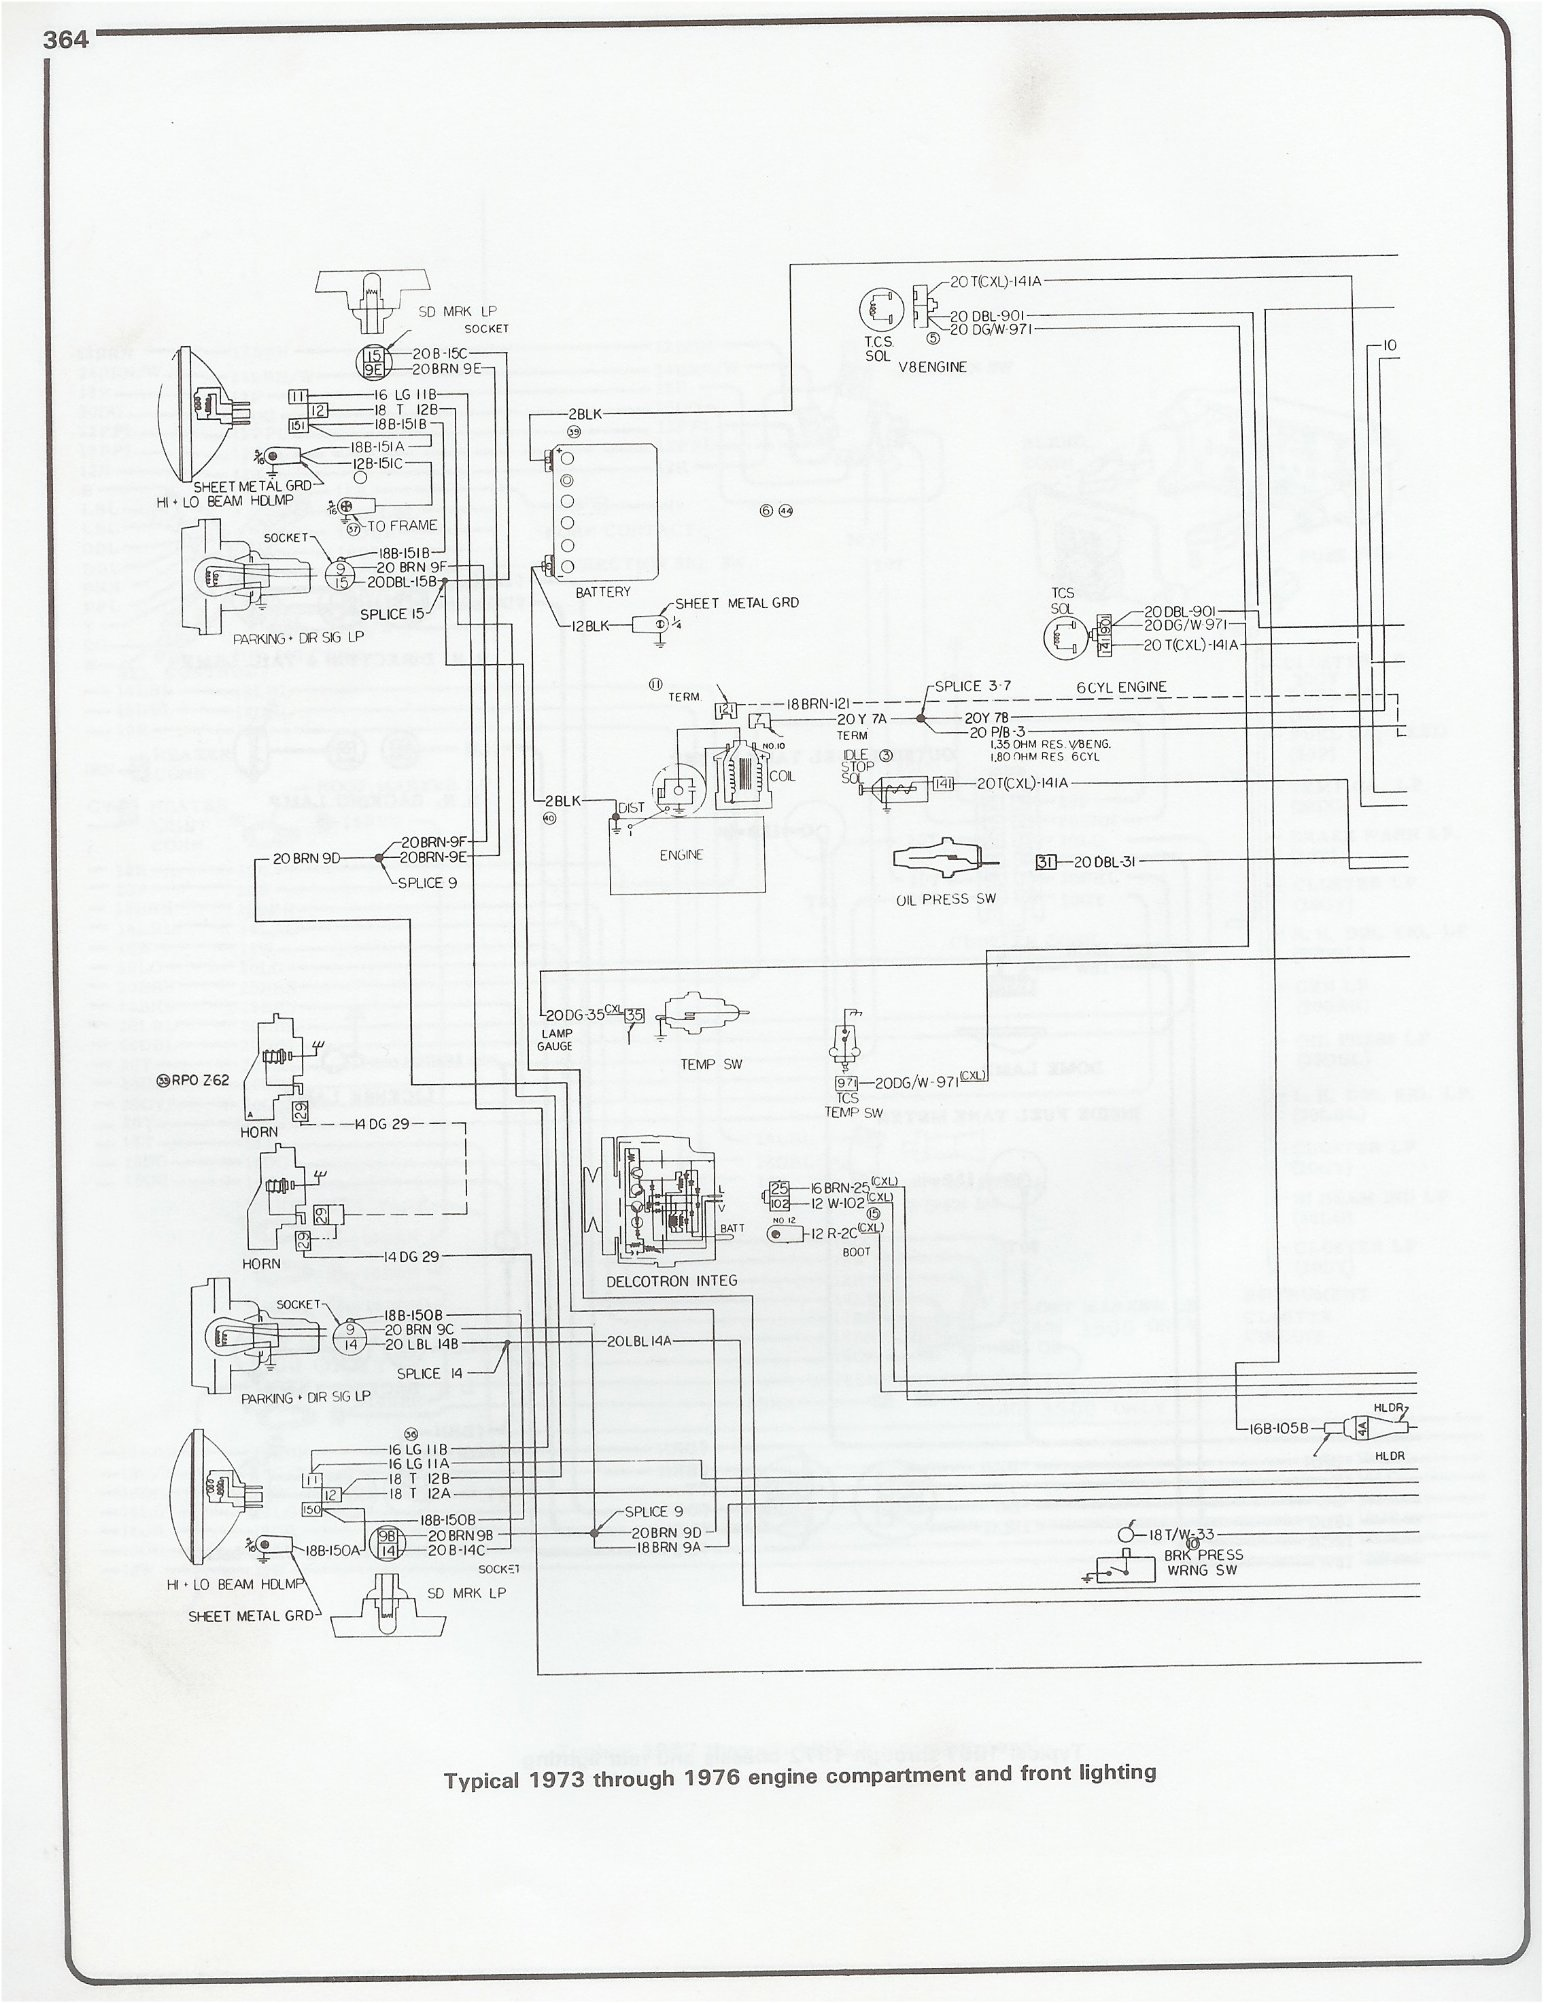 Chevy Truck Wiring Diagrams Great Design Of Diagram 2003 Impala Stock Radio Electrical Only Page 2 Forum Free